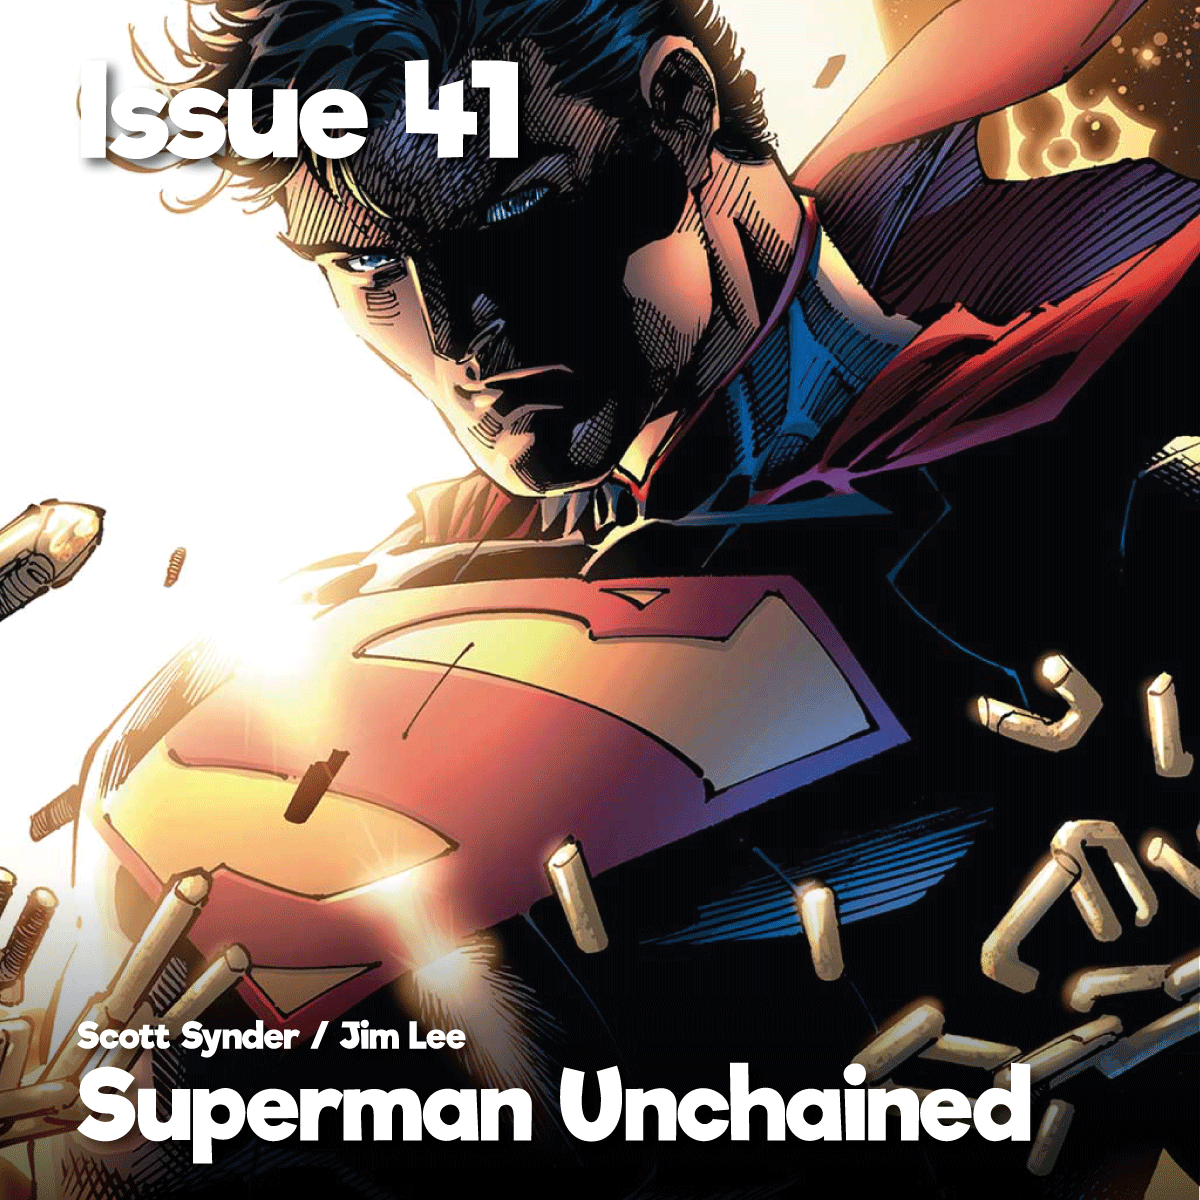 Issue41_SupermanUnchained_1200x1200.png